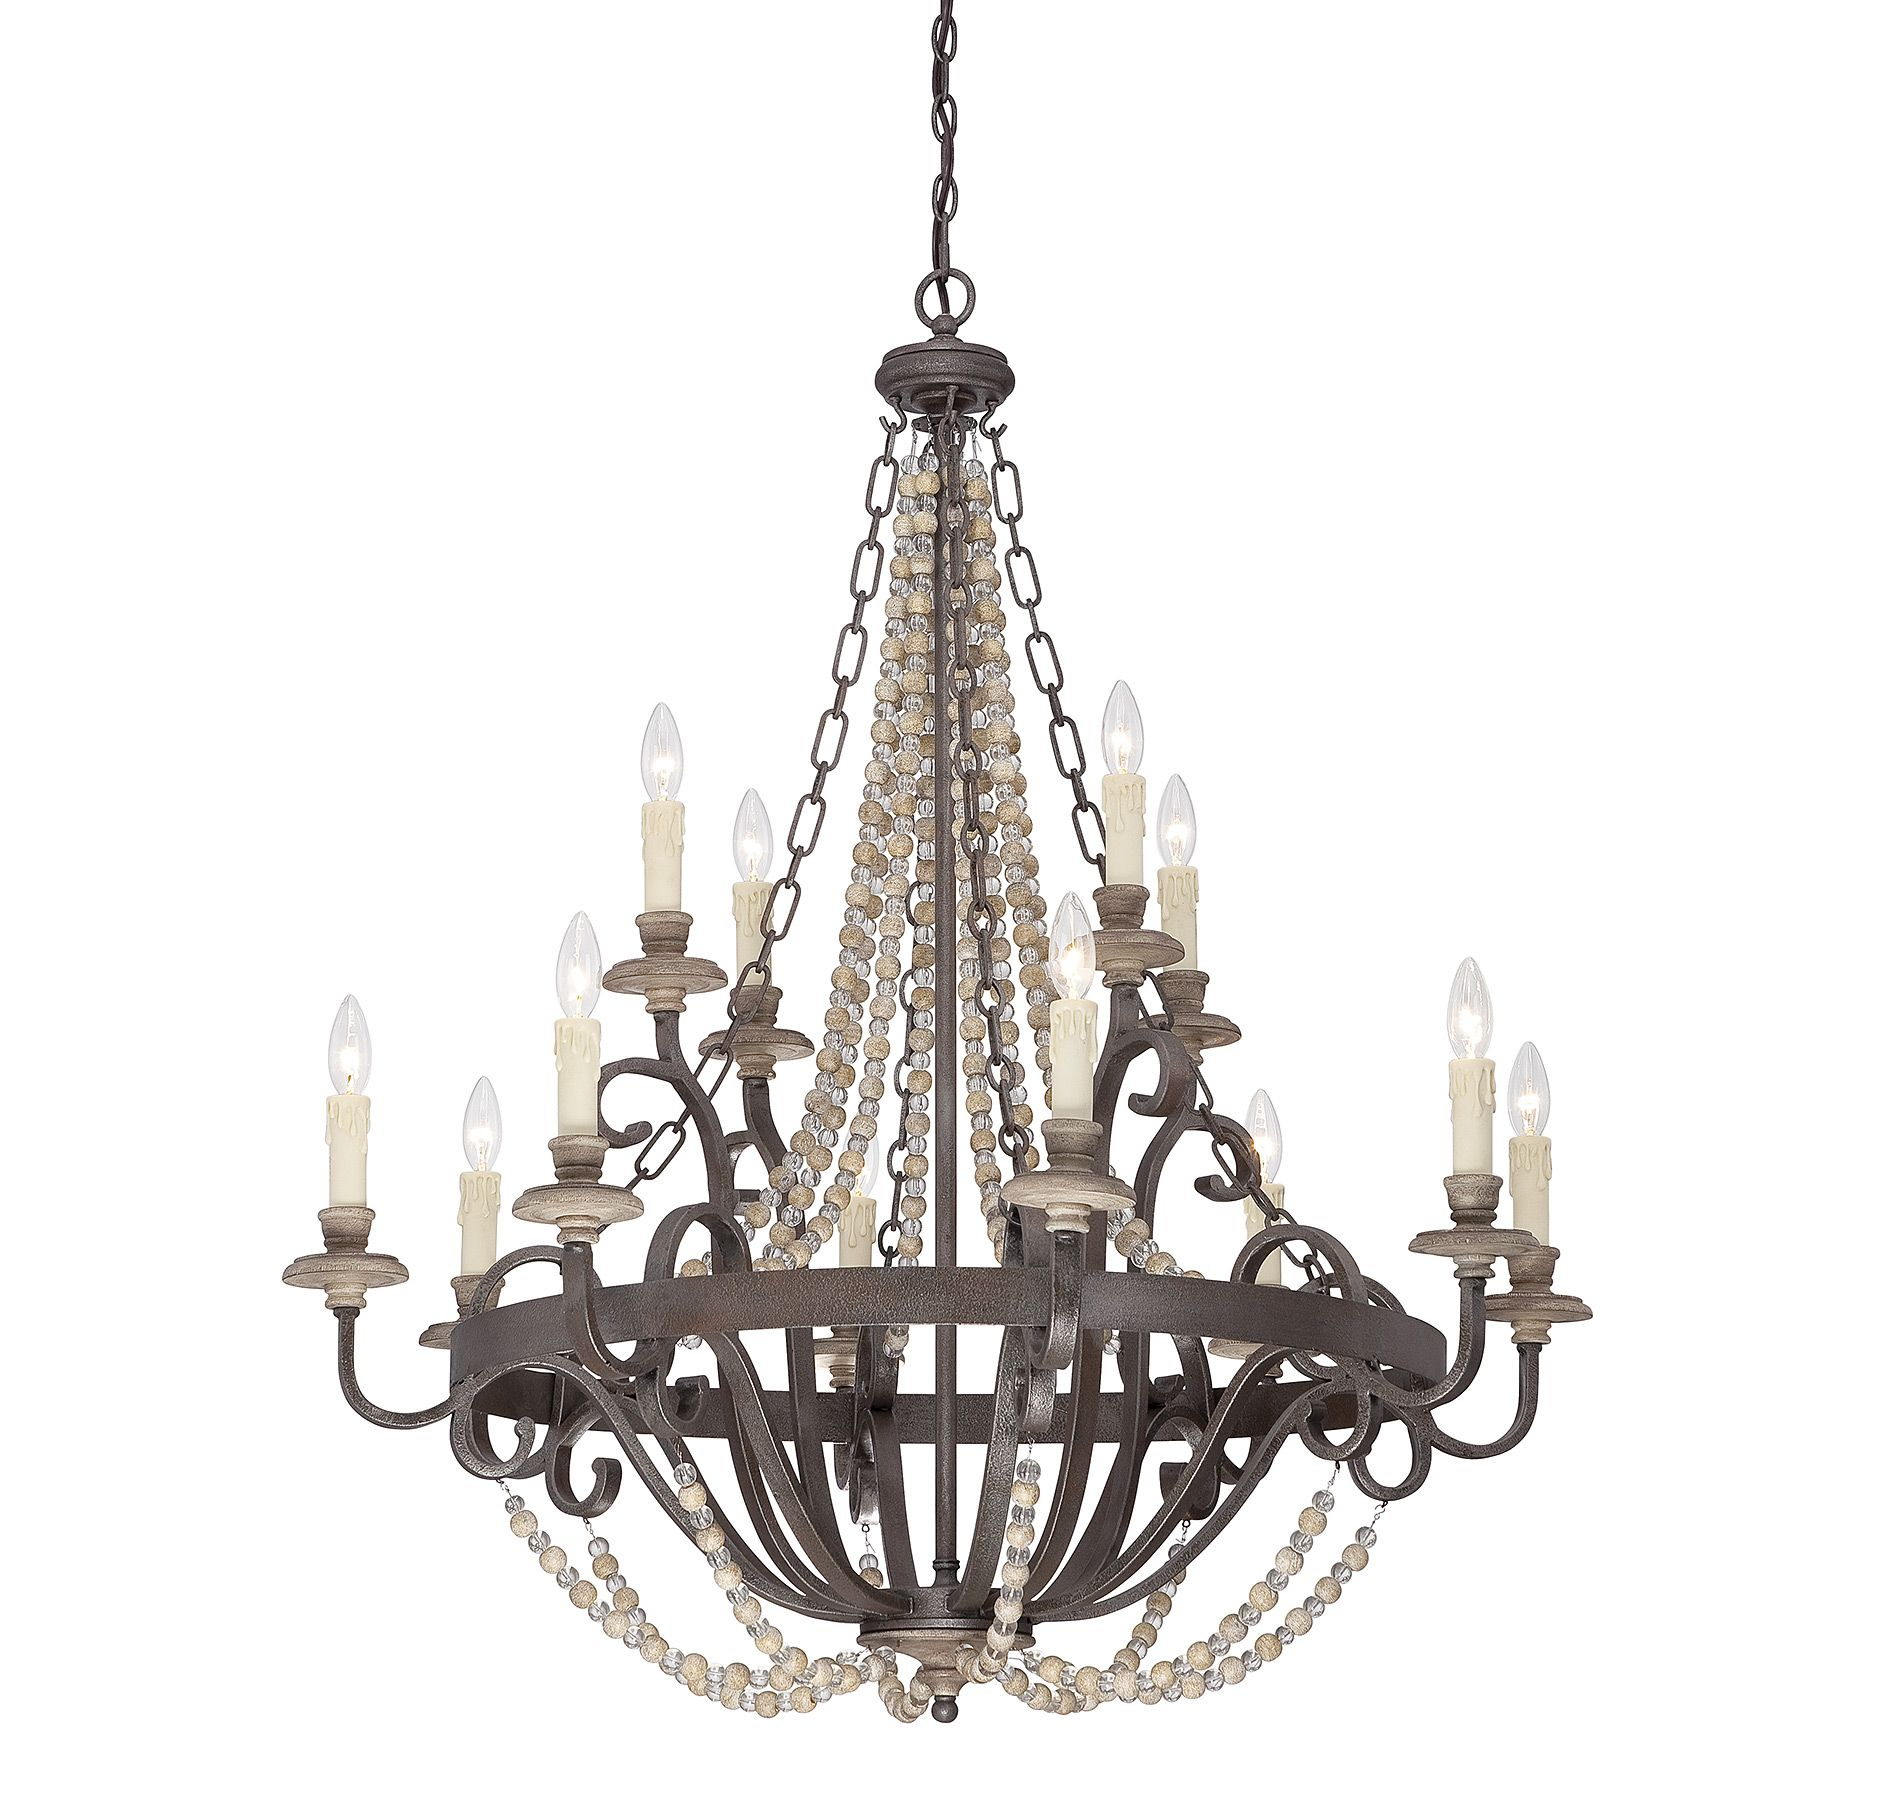 Mallory 12 light chandelier fossil stone finish wrought iron mallory 12 light chandelier fossil stone finish wrought iron rustic and arubaitofo Choice Image